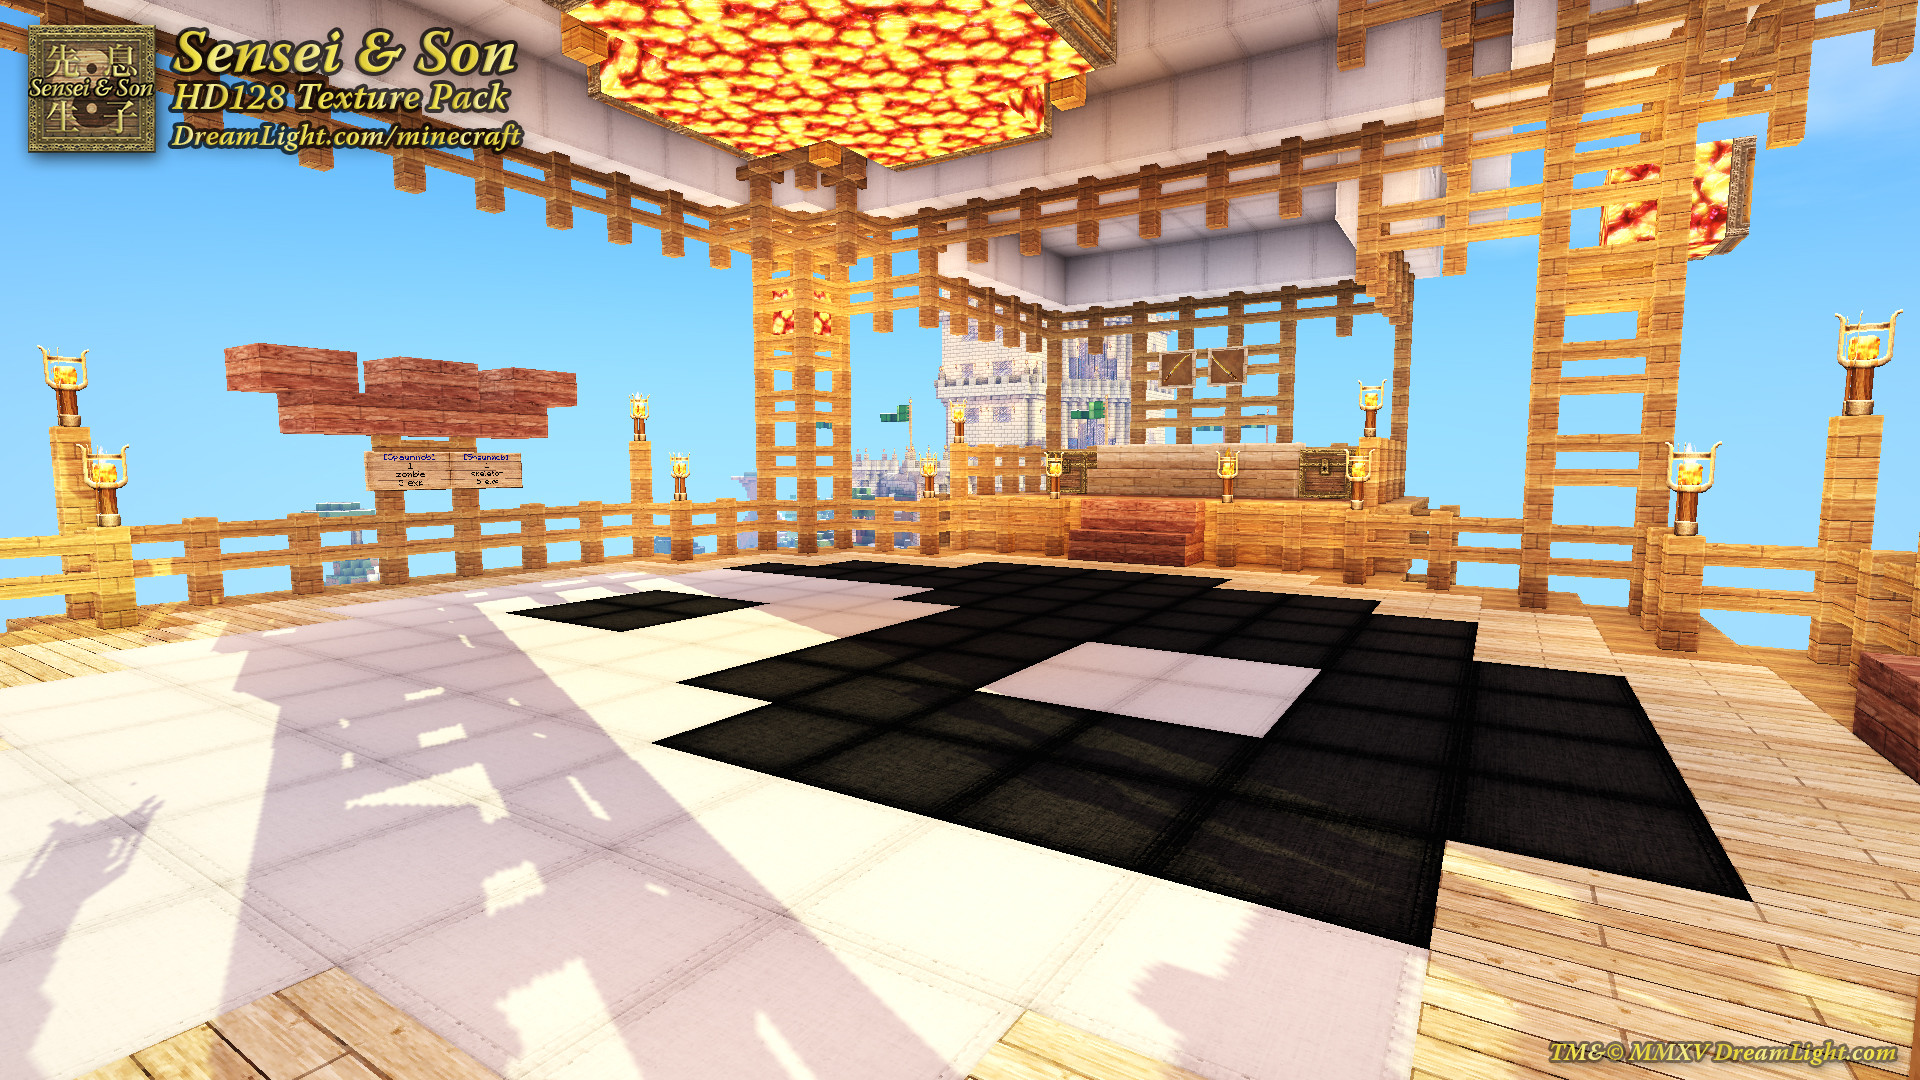 bsl hardwood flooring reviews of sensei and son hd128 minecraft texture pack dreamlight com intended for 1